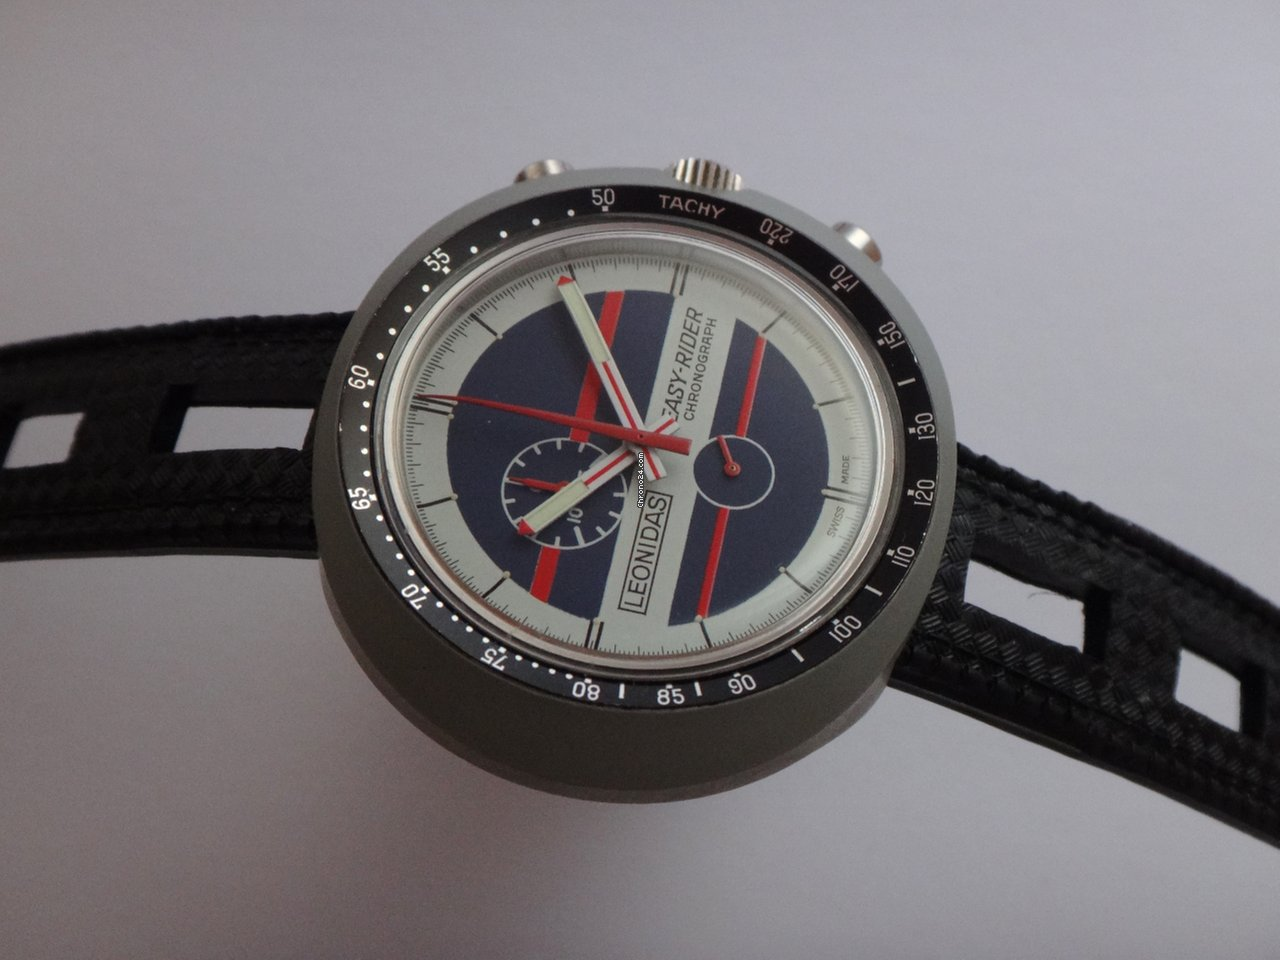 1970's Vintage Sears 1 Reister Chronograph with Heuer